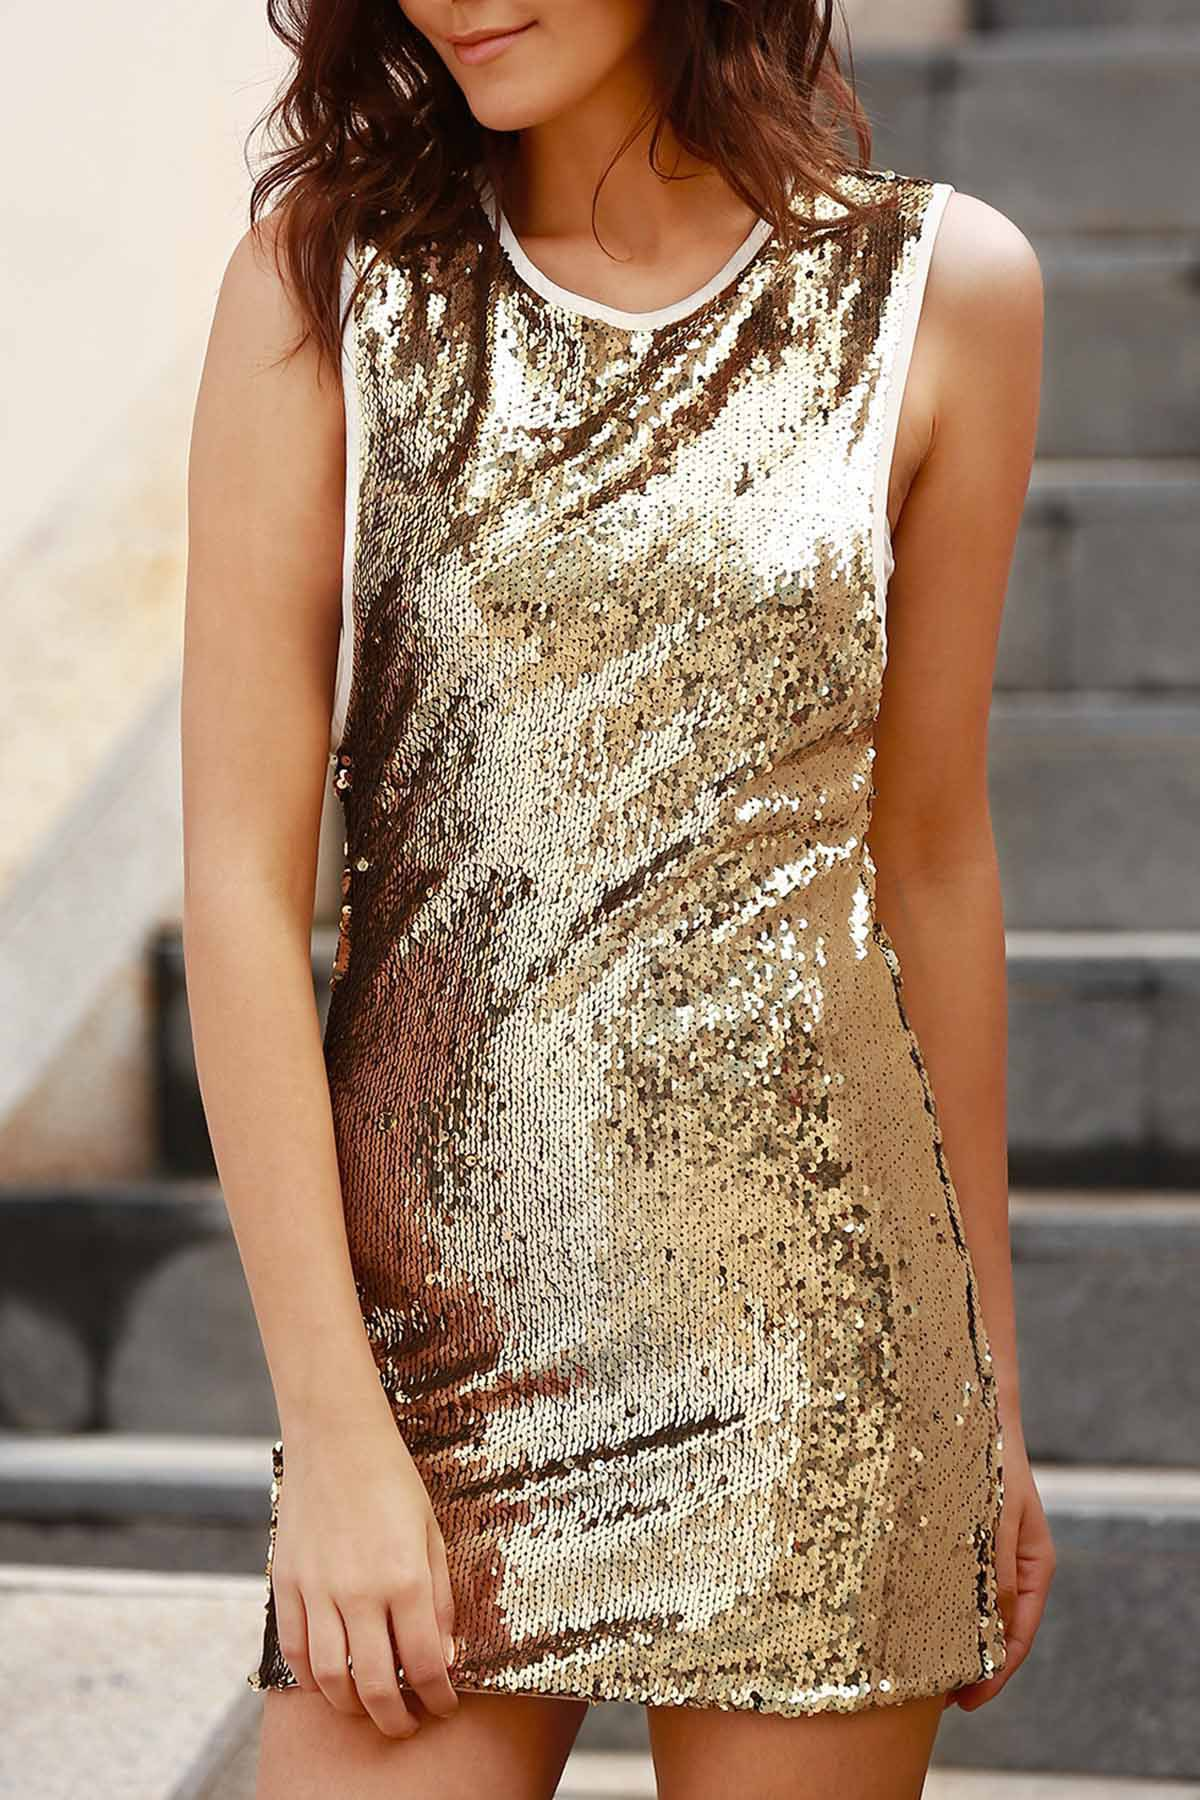 Round Collar Sleeveless Sequins Bodycon Dress